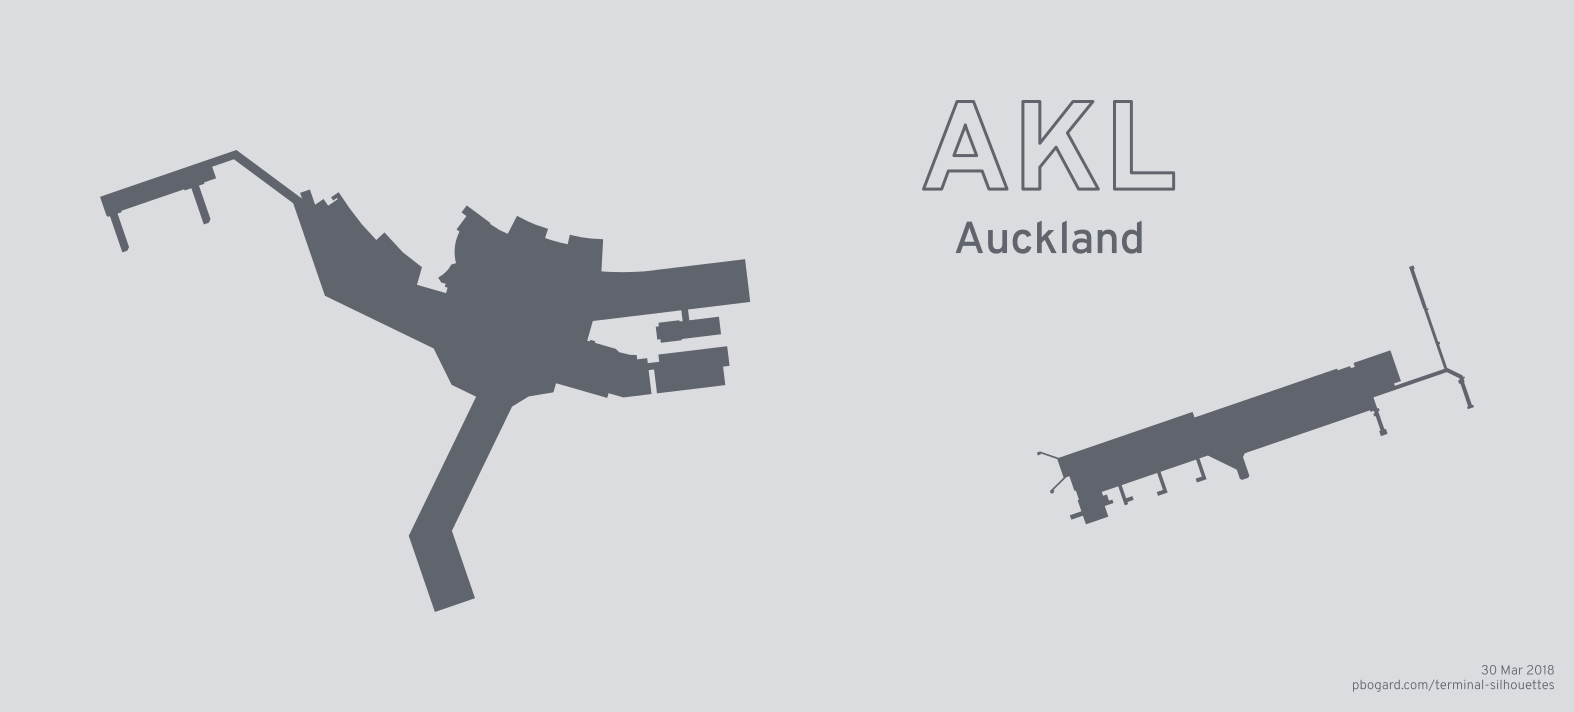 Terminal silhouette of AKL (Auckland)